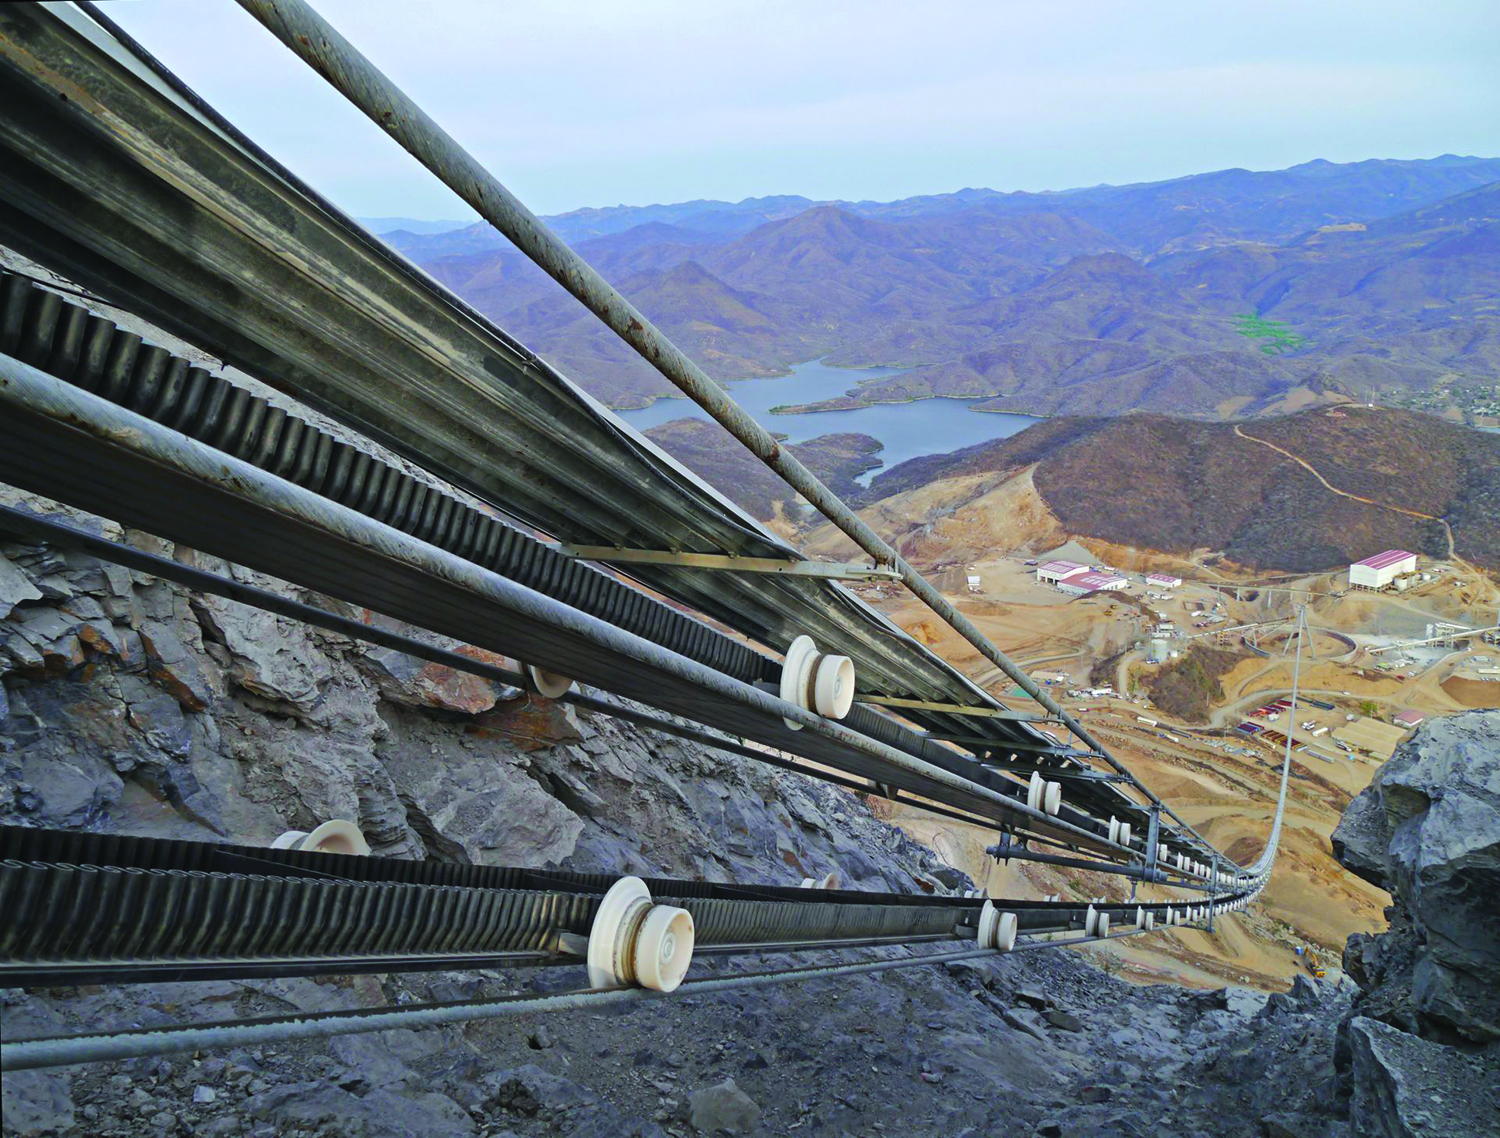 A Ropecon suspended conveyor system designed by Doppelmayr transports 1,000 mt/h of gold ore down a steep 400-m incline at Torex Gold's El Limon-Guajes mine in Mexico.